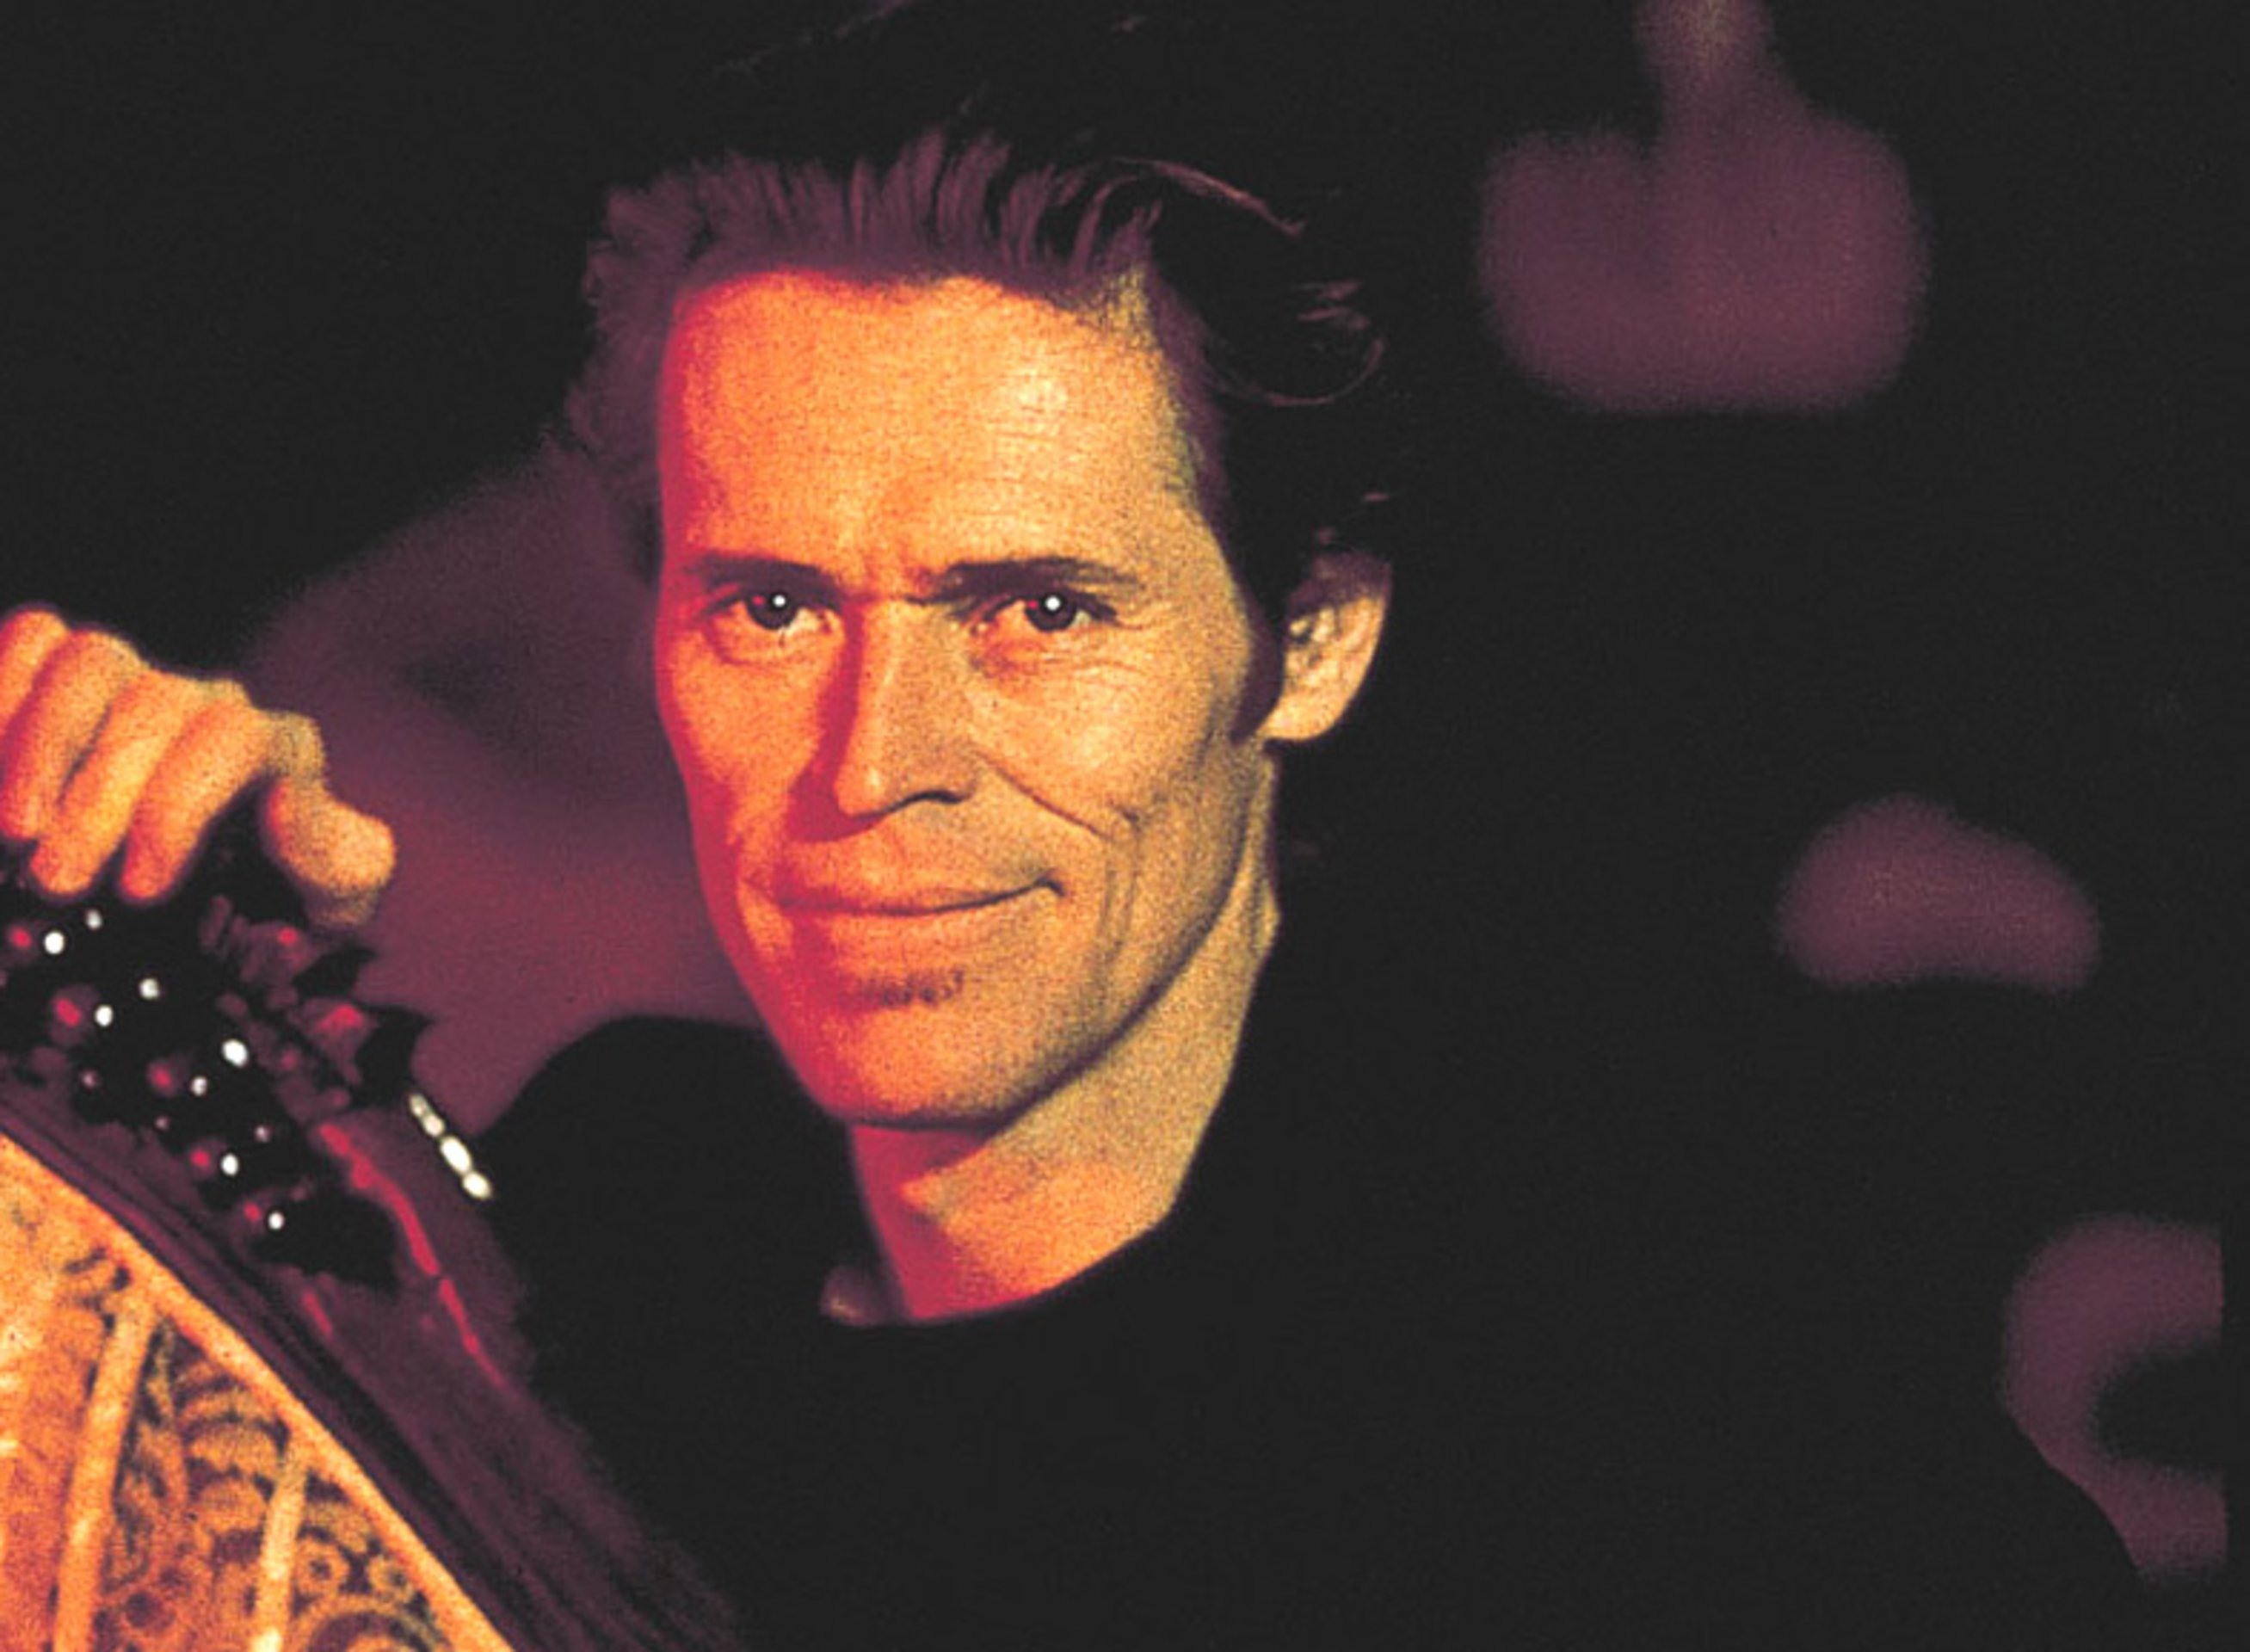 Willem Dafoe in New Rose Hotel (1998)